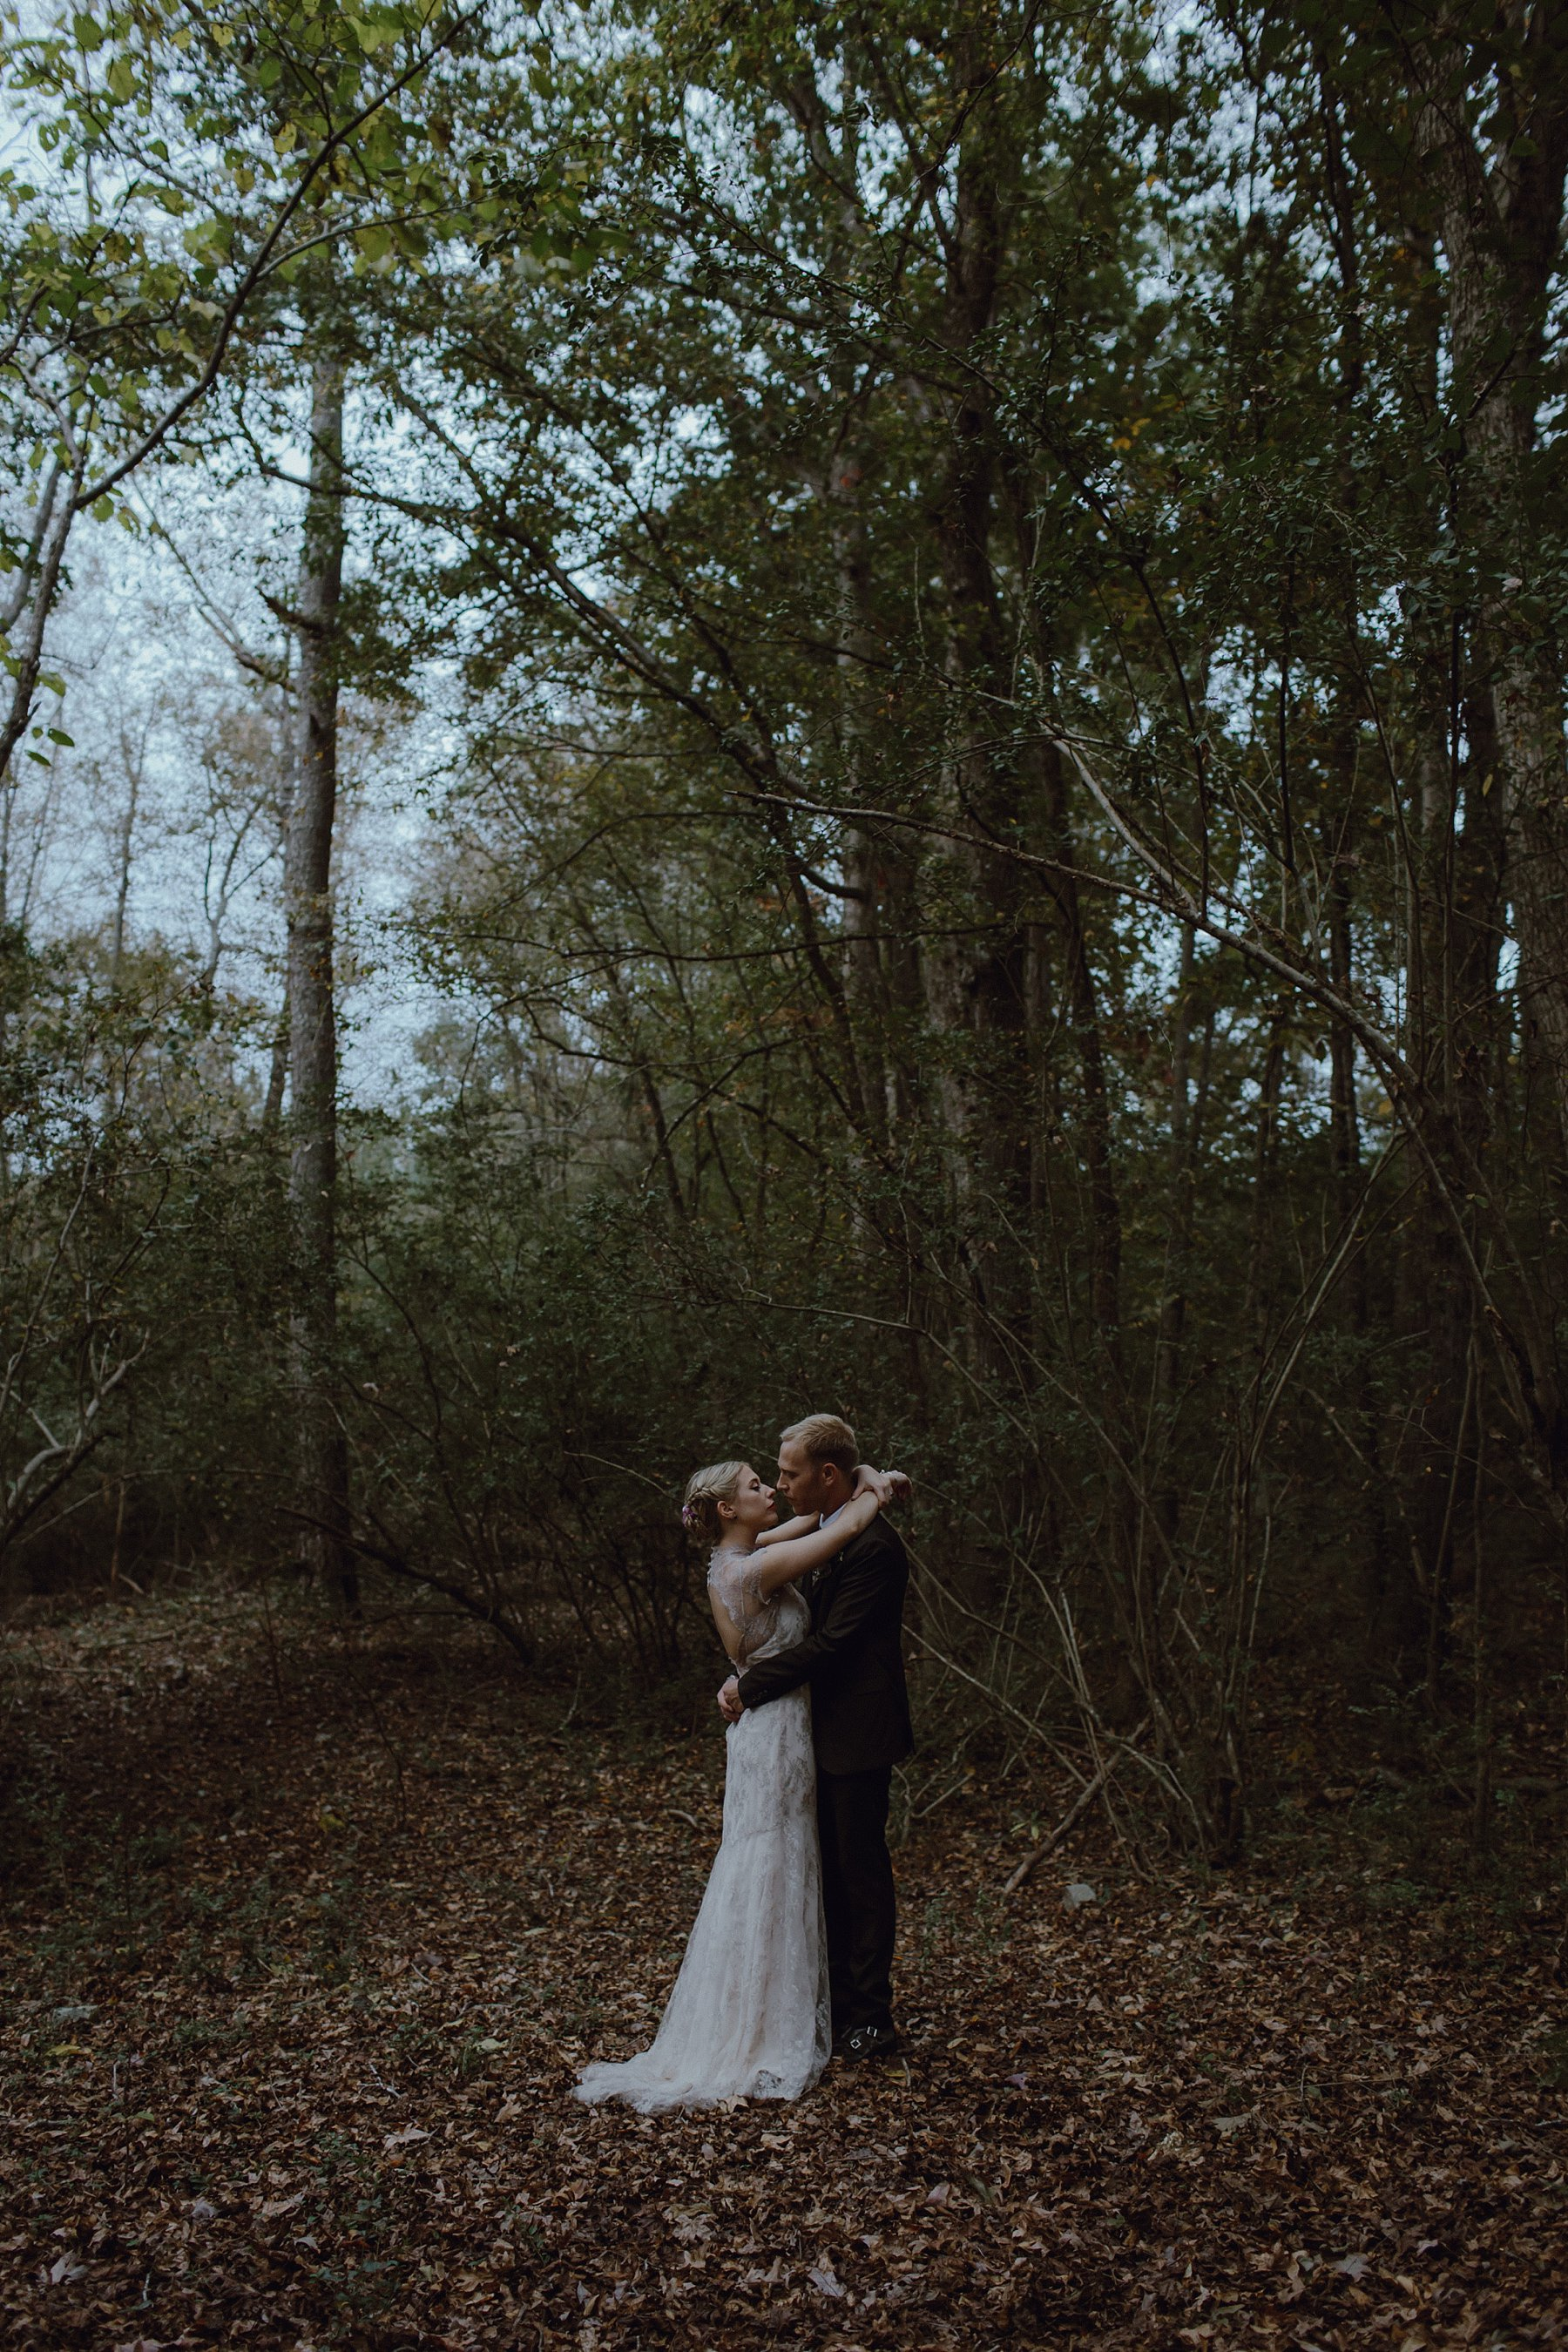 A forest photo of a bride and groom by Catalina Jean Photography